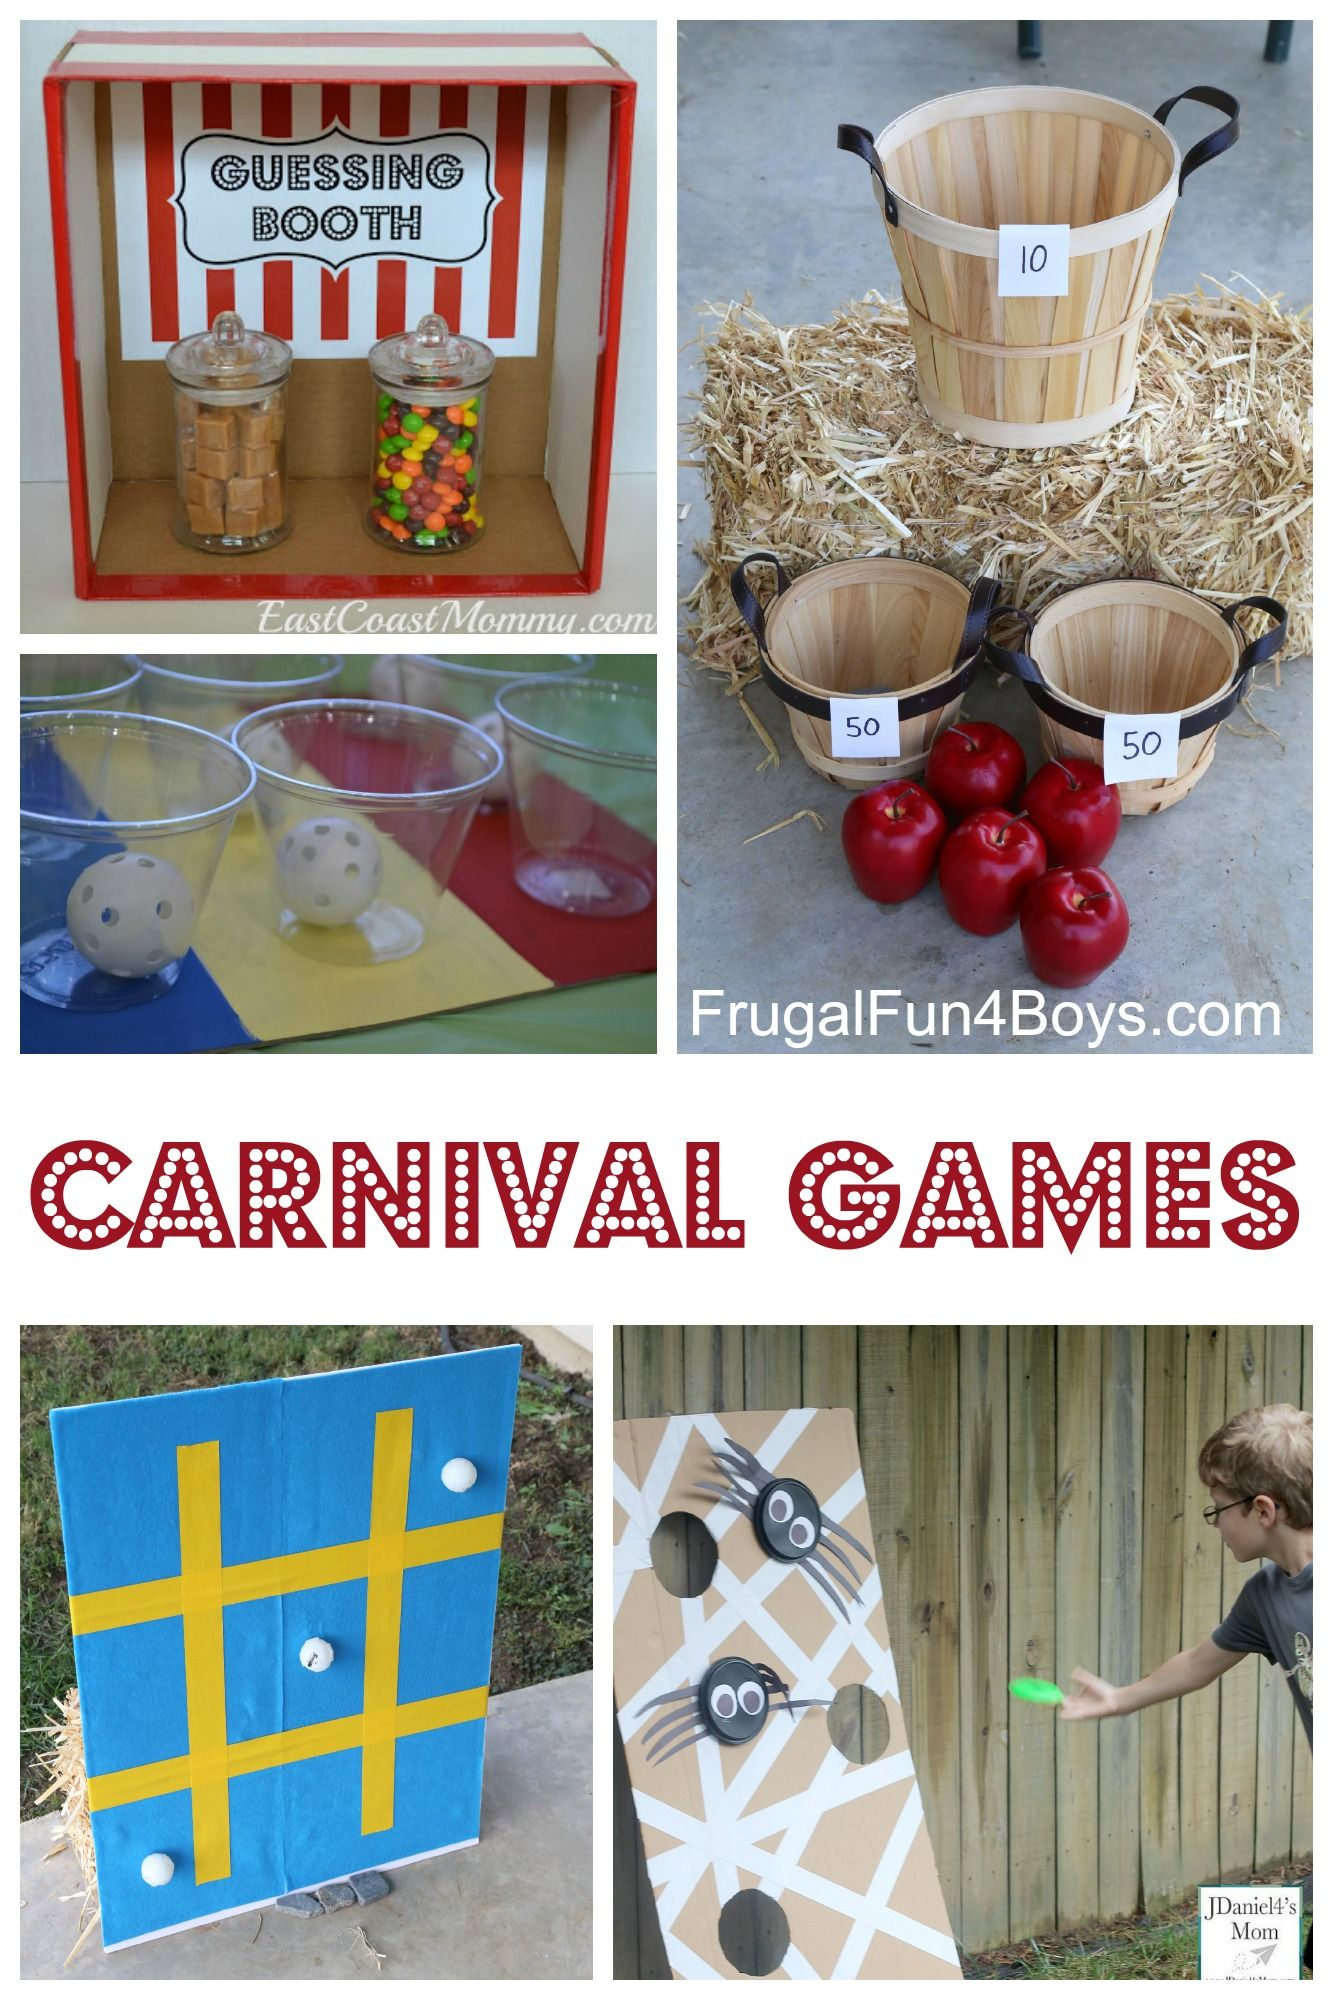 25+ Simple Carnival Games for Kids | School carnival, Carnival ...